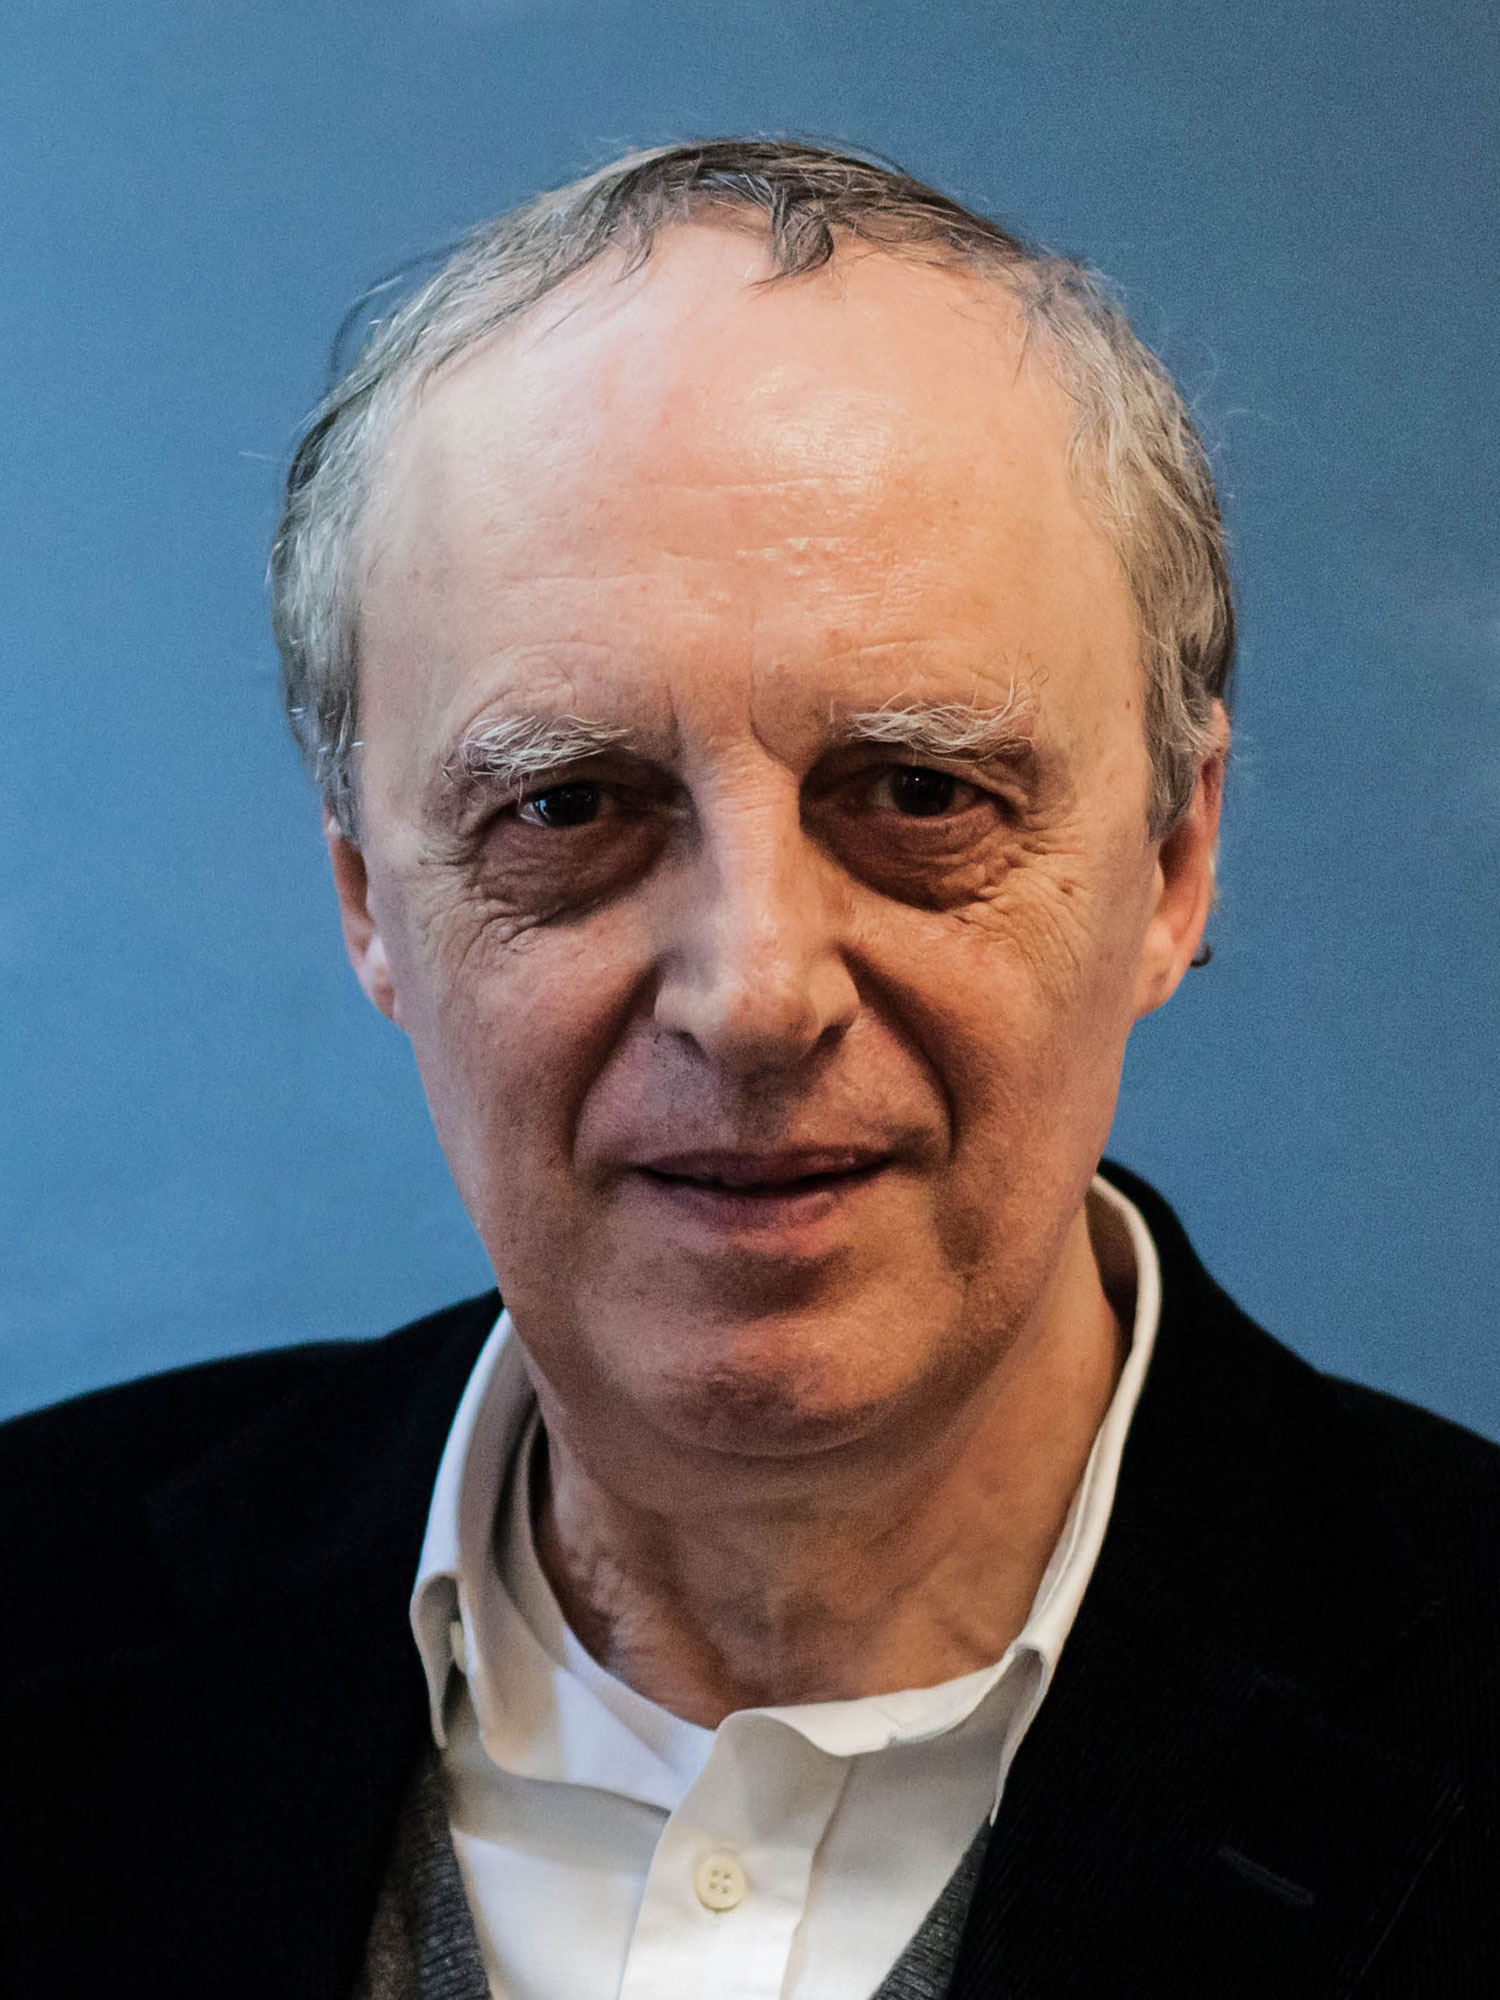 Dario Argento by Filmfestival Linz [CC BY 2.0], via Wikimedia Commons